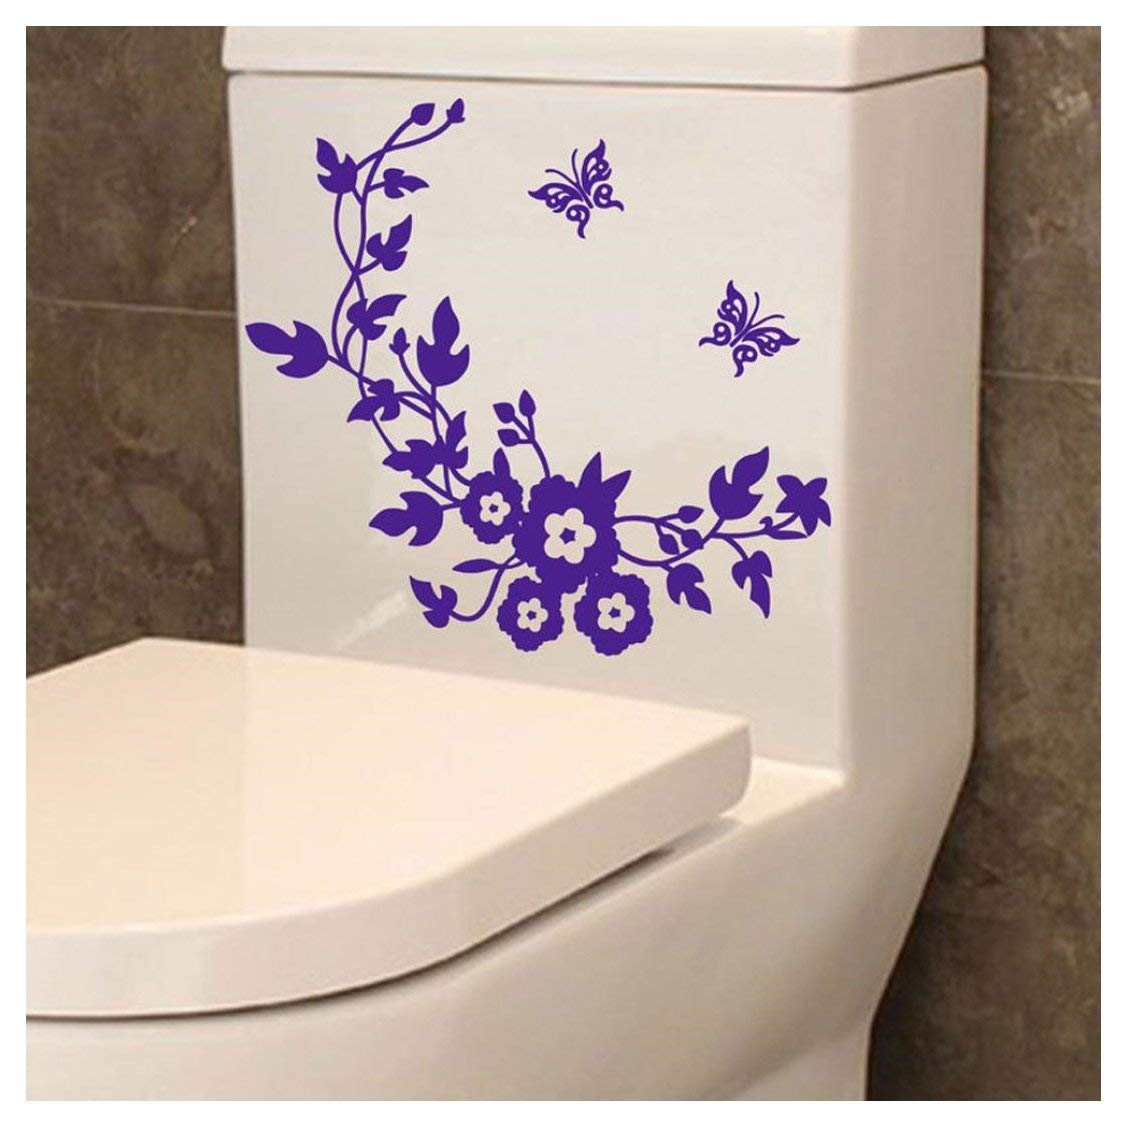 Toilet sticker, Kemilove Toilet Grand Removable Mural Decal Art - Flowers And Vine (Purple)